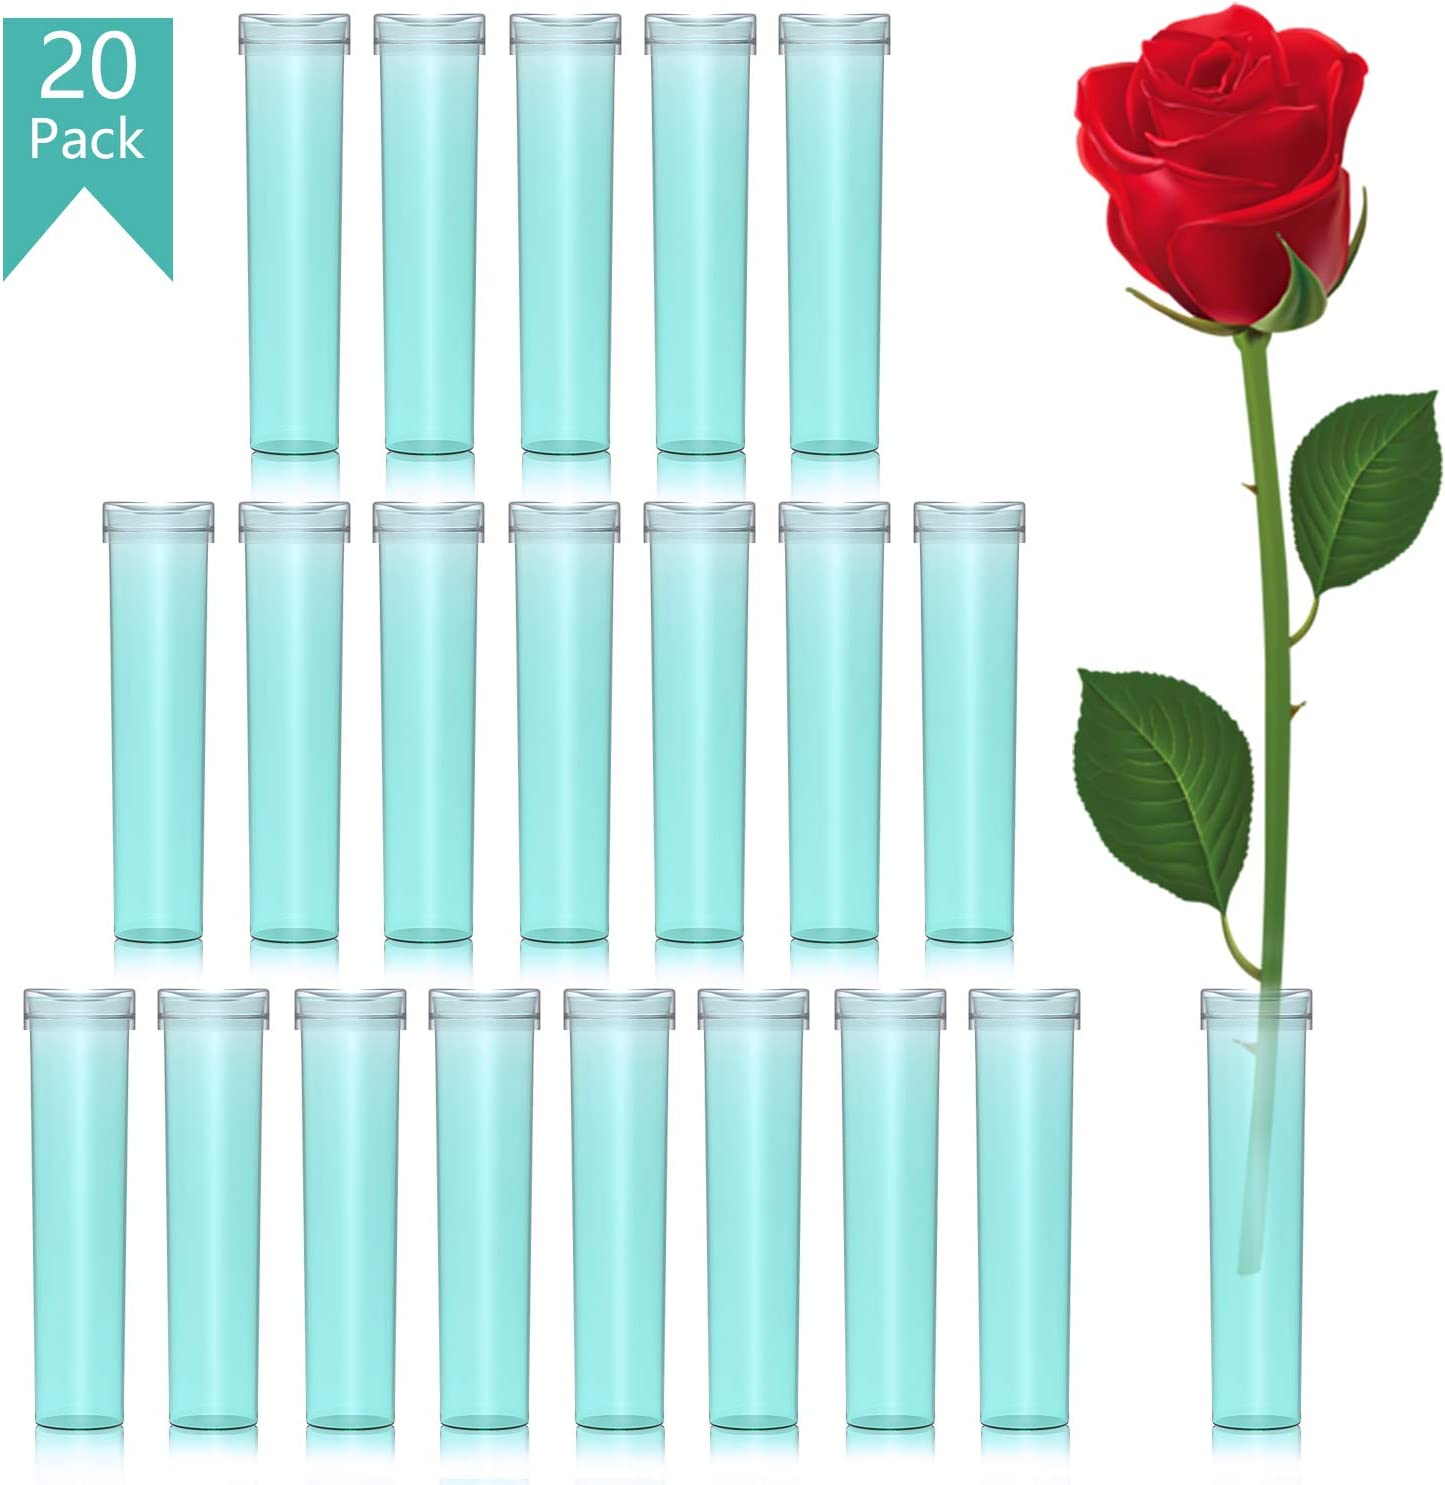 Ideal Fresh Floral Single Stem Tubes Water Pick Vial for Keeping Flowers Fresh